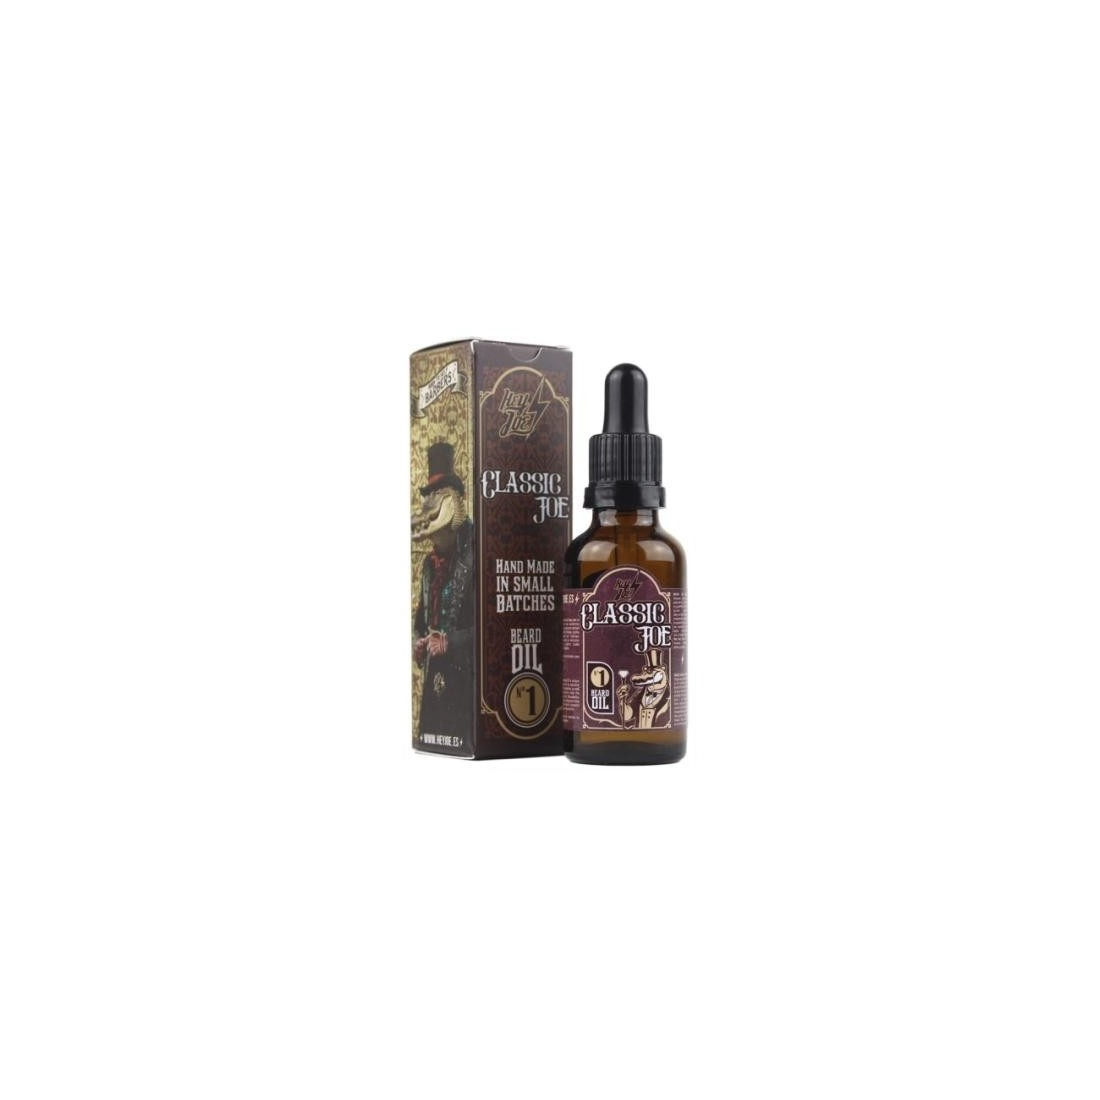 Hey Joe Classic Beard Oil No1 30ml